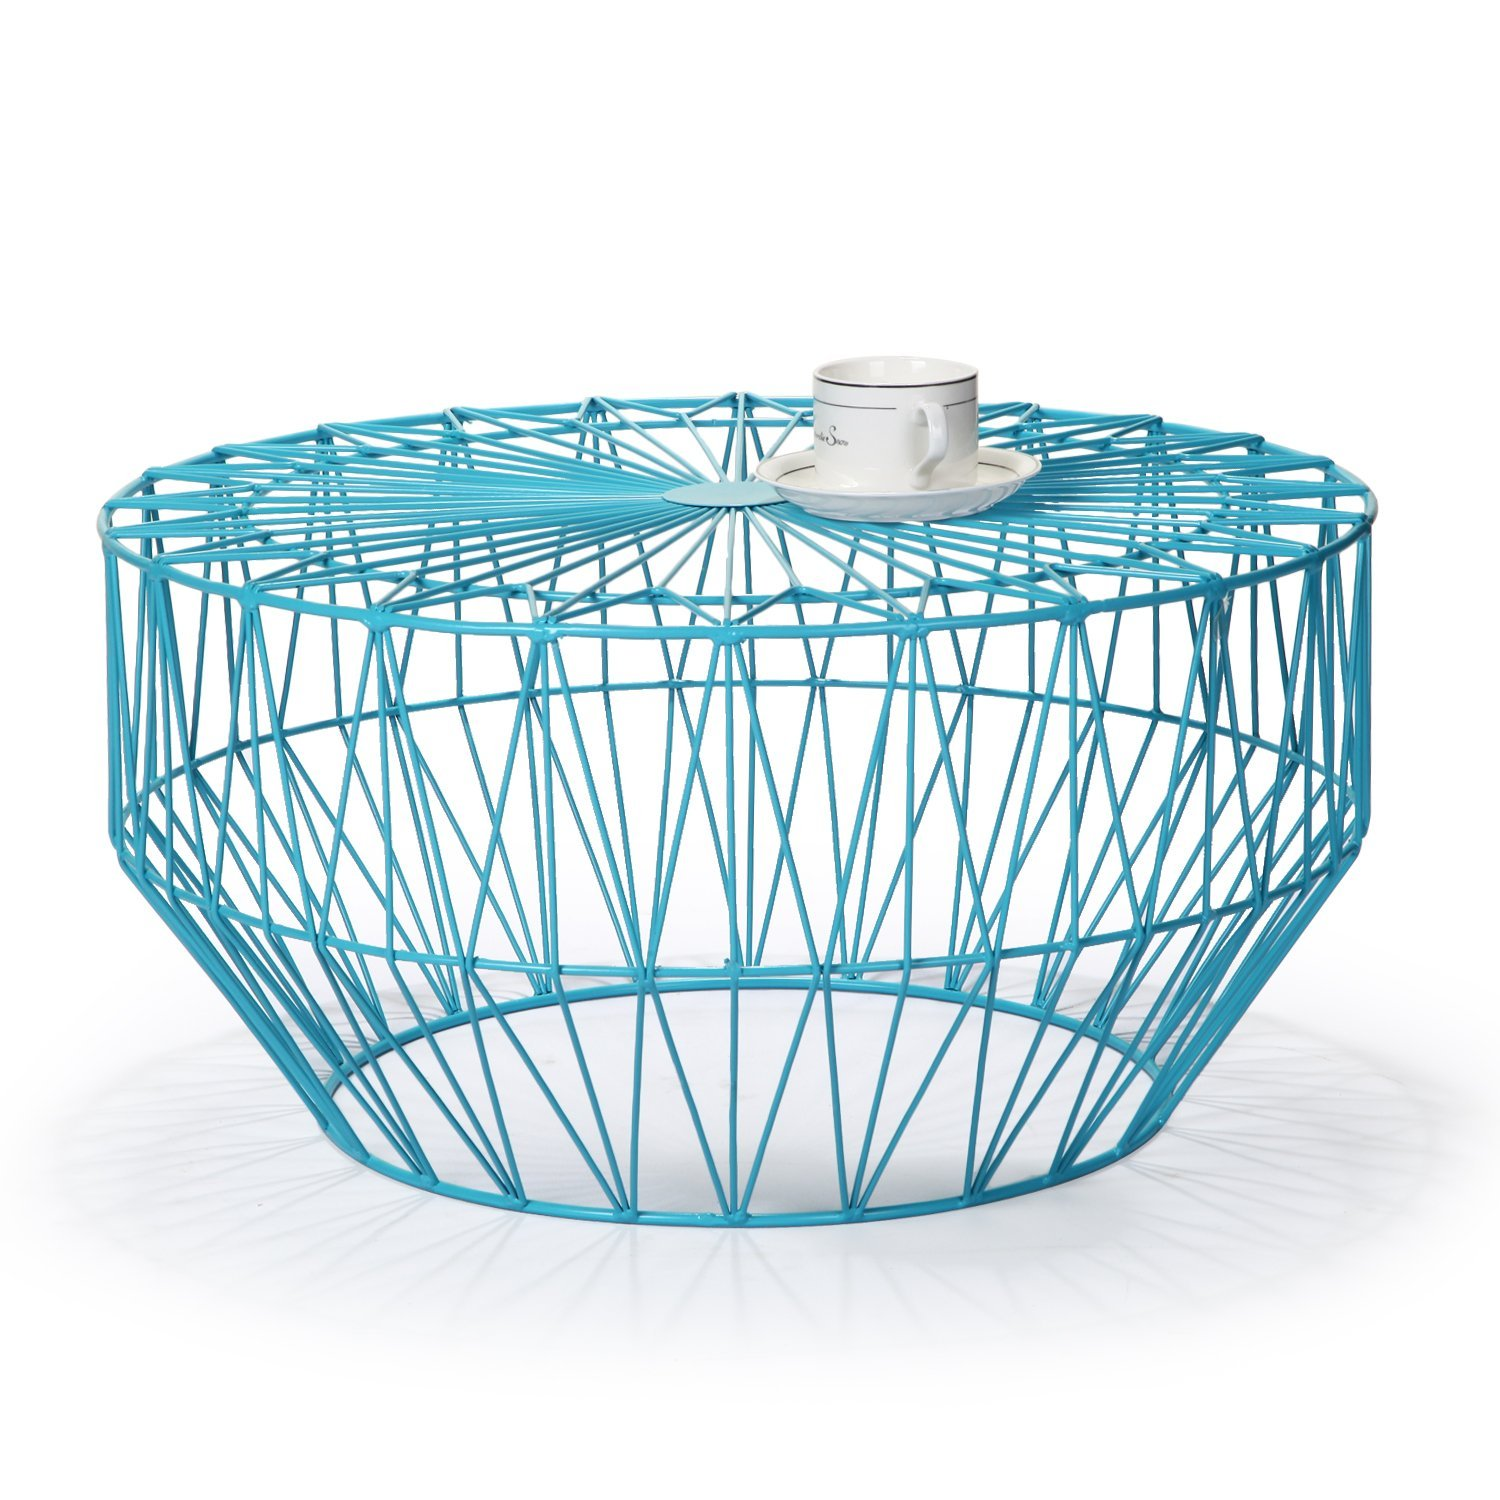 joveco round metal iron wire structure coffee table sofa adeco accent starburst end side sky blue basket with triangle pattern light all modern plastic patio furniture seating and